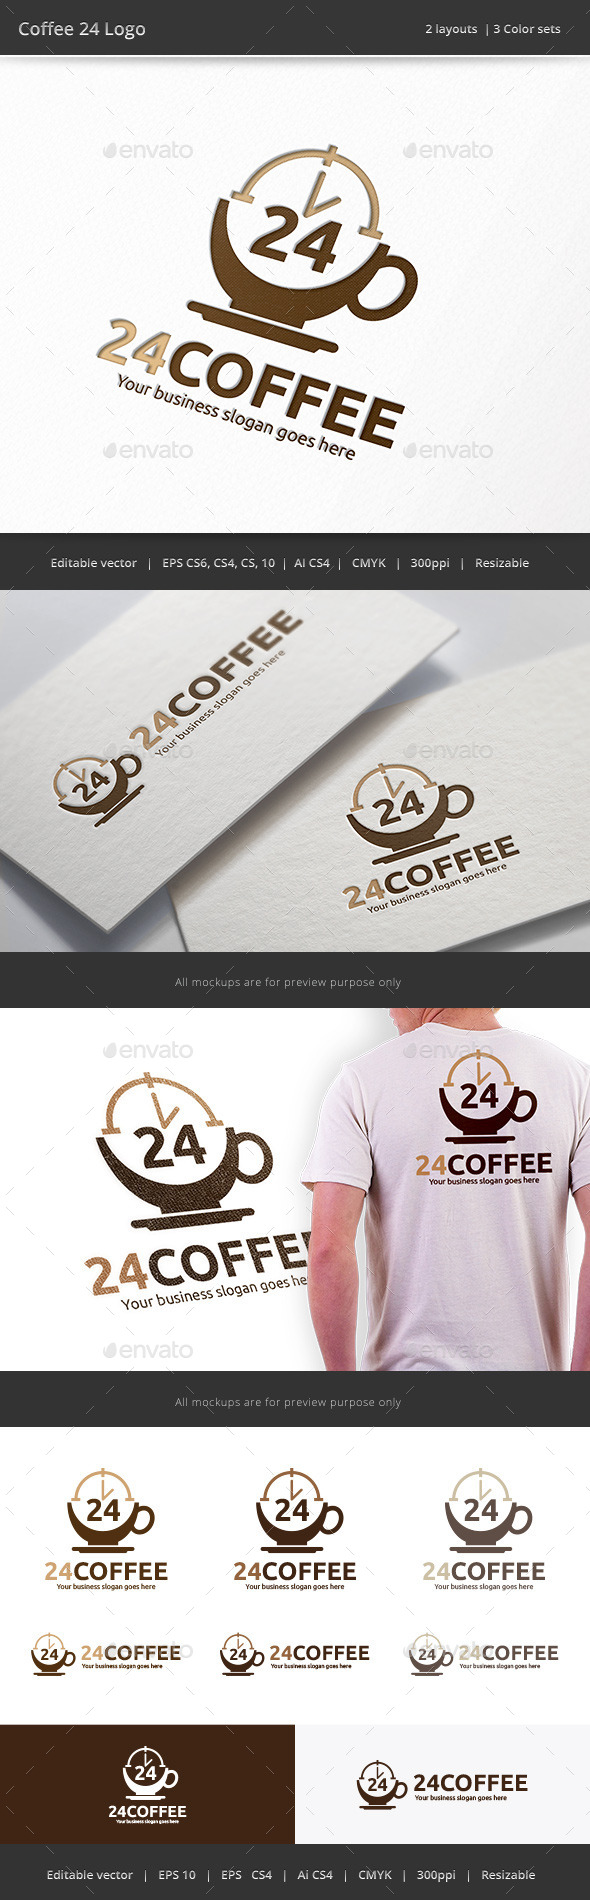 GraphicRiver Coffee 24 Hour Logo 9309842